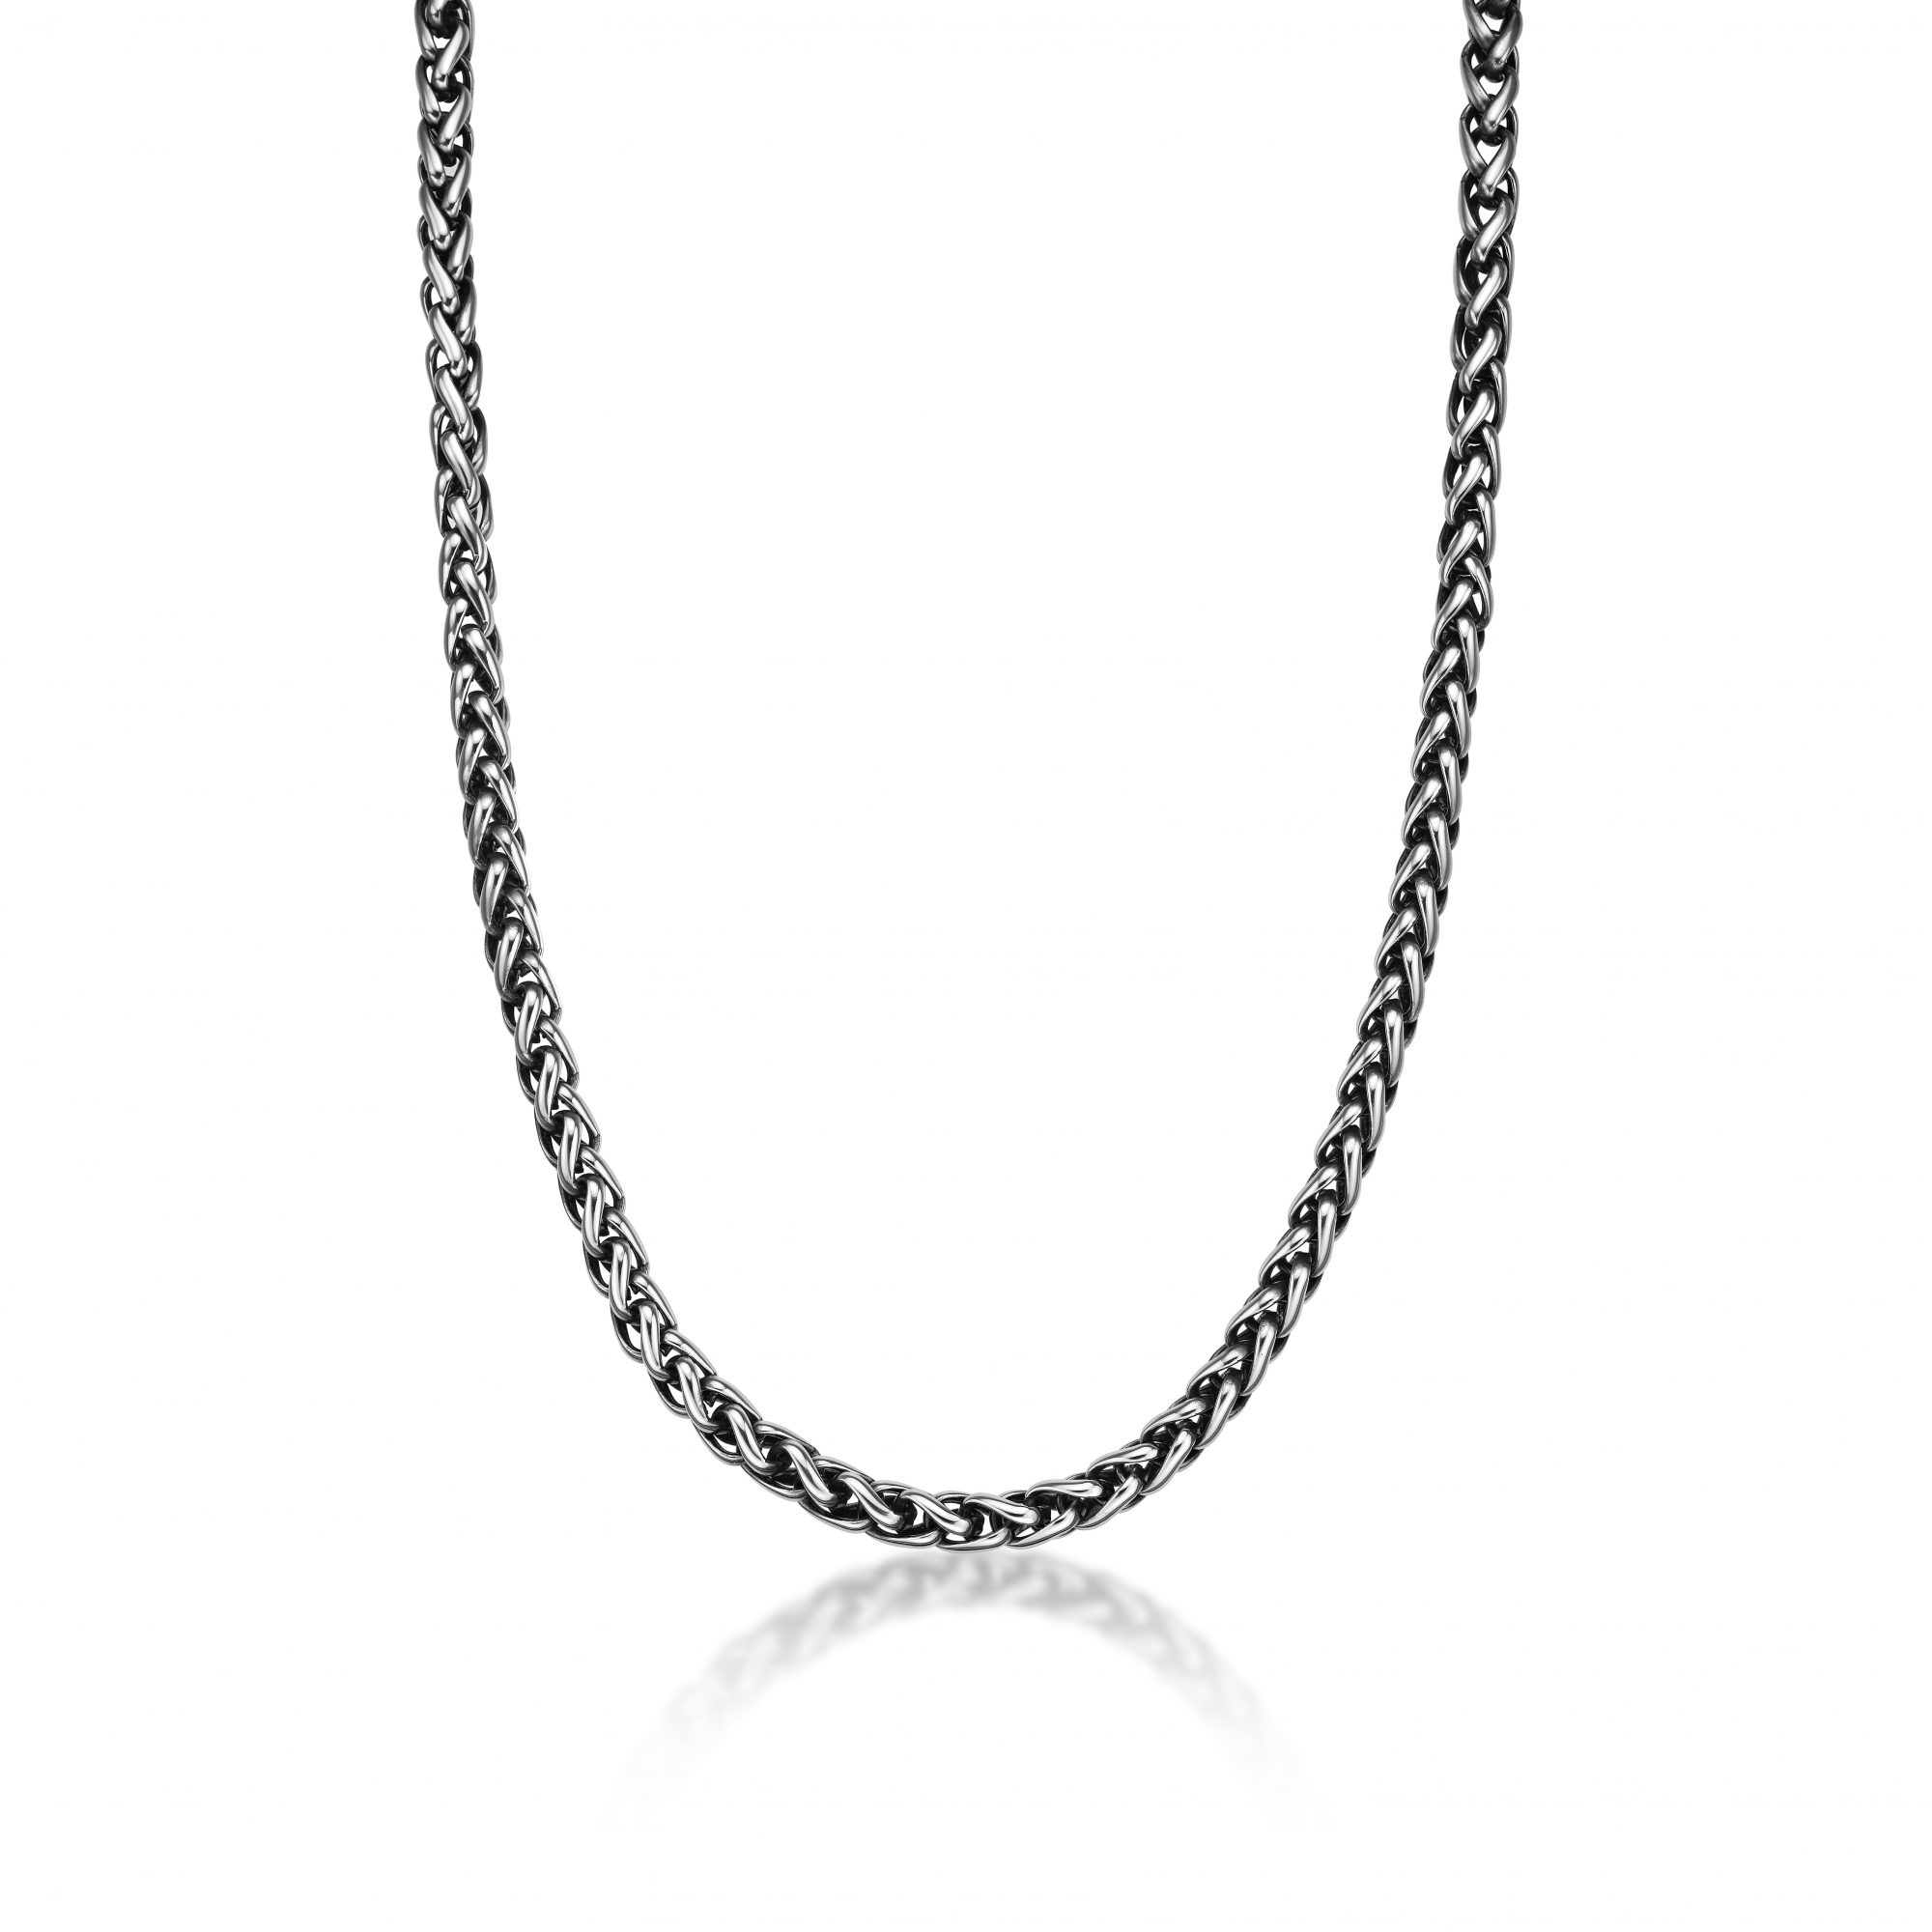 Stainless Steel Antique Finish Wheat Chain Necklace - 8 MM Wide, 24 Inches Length with Lobster Lock